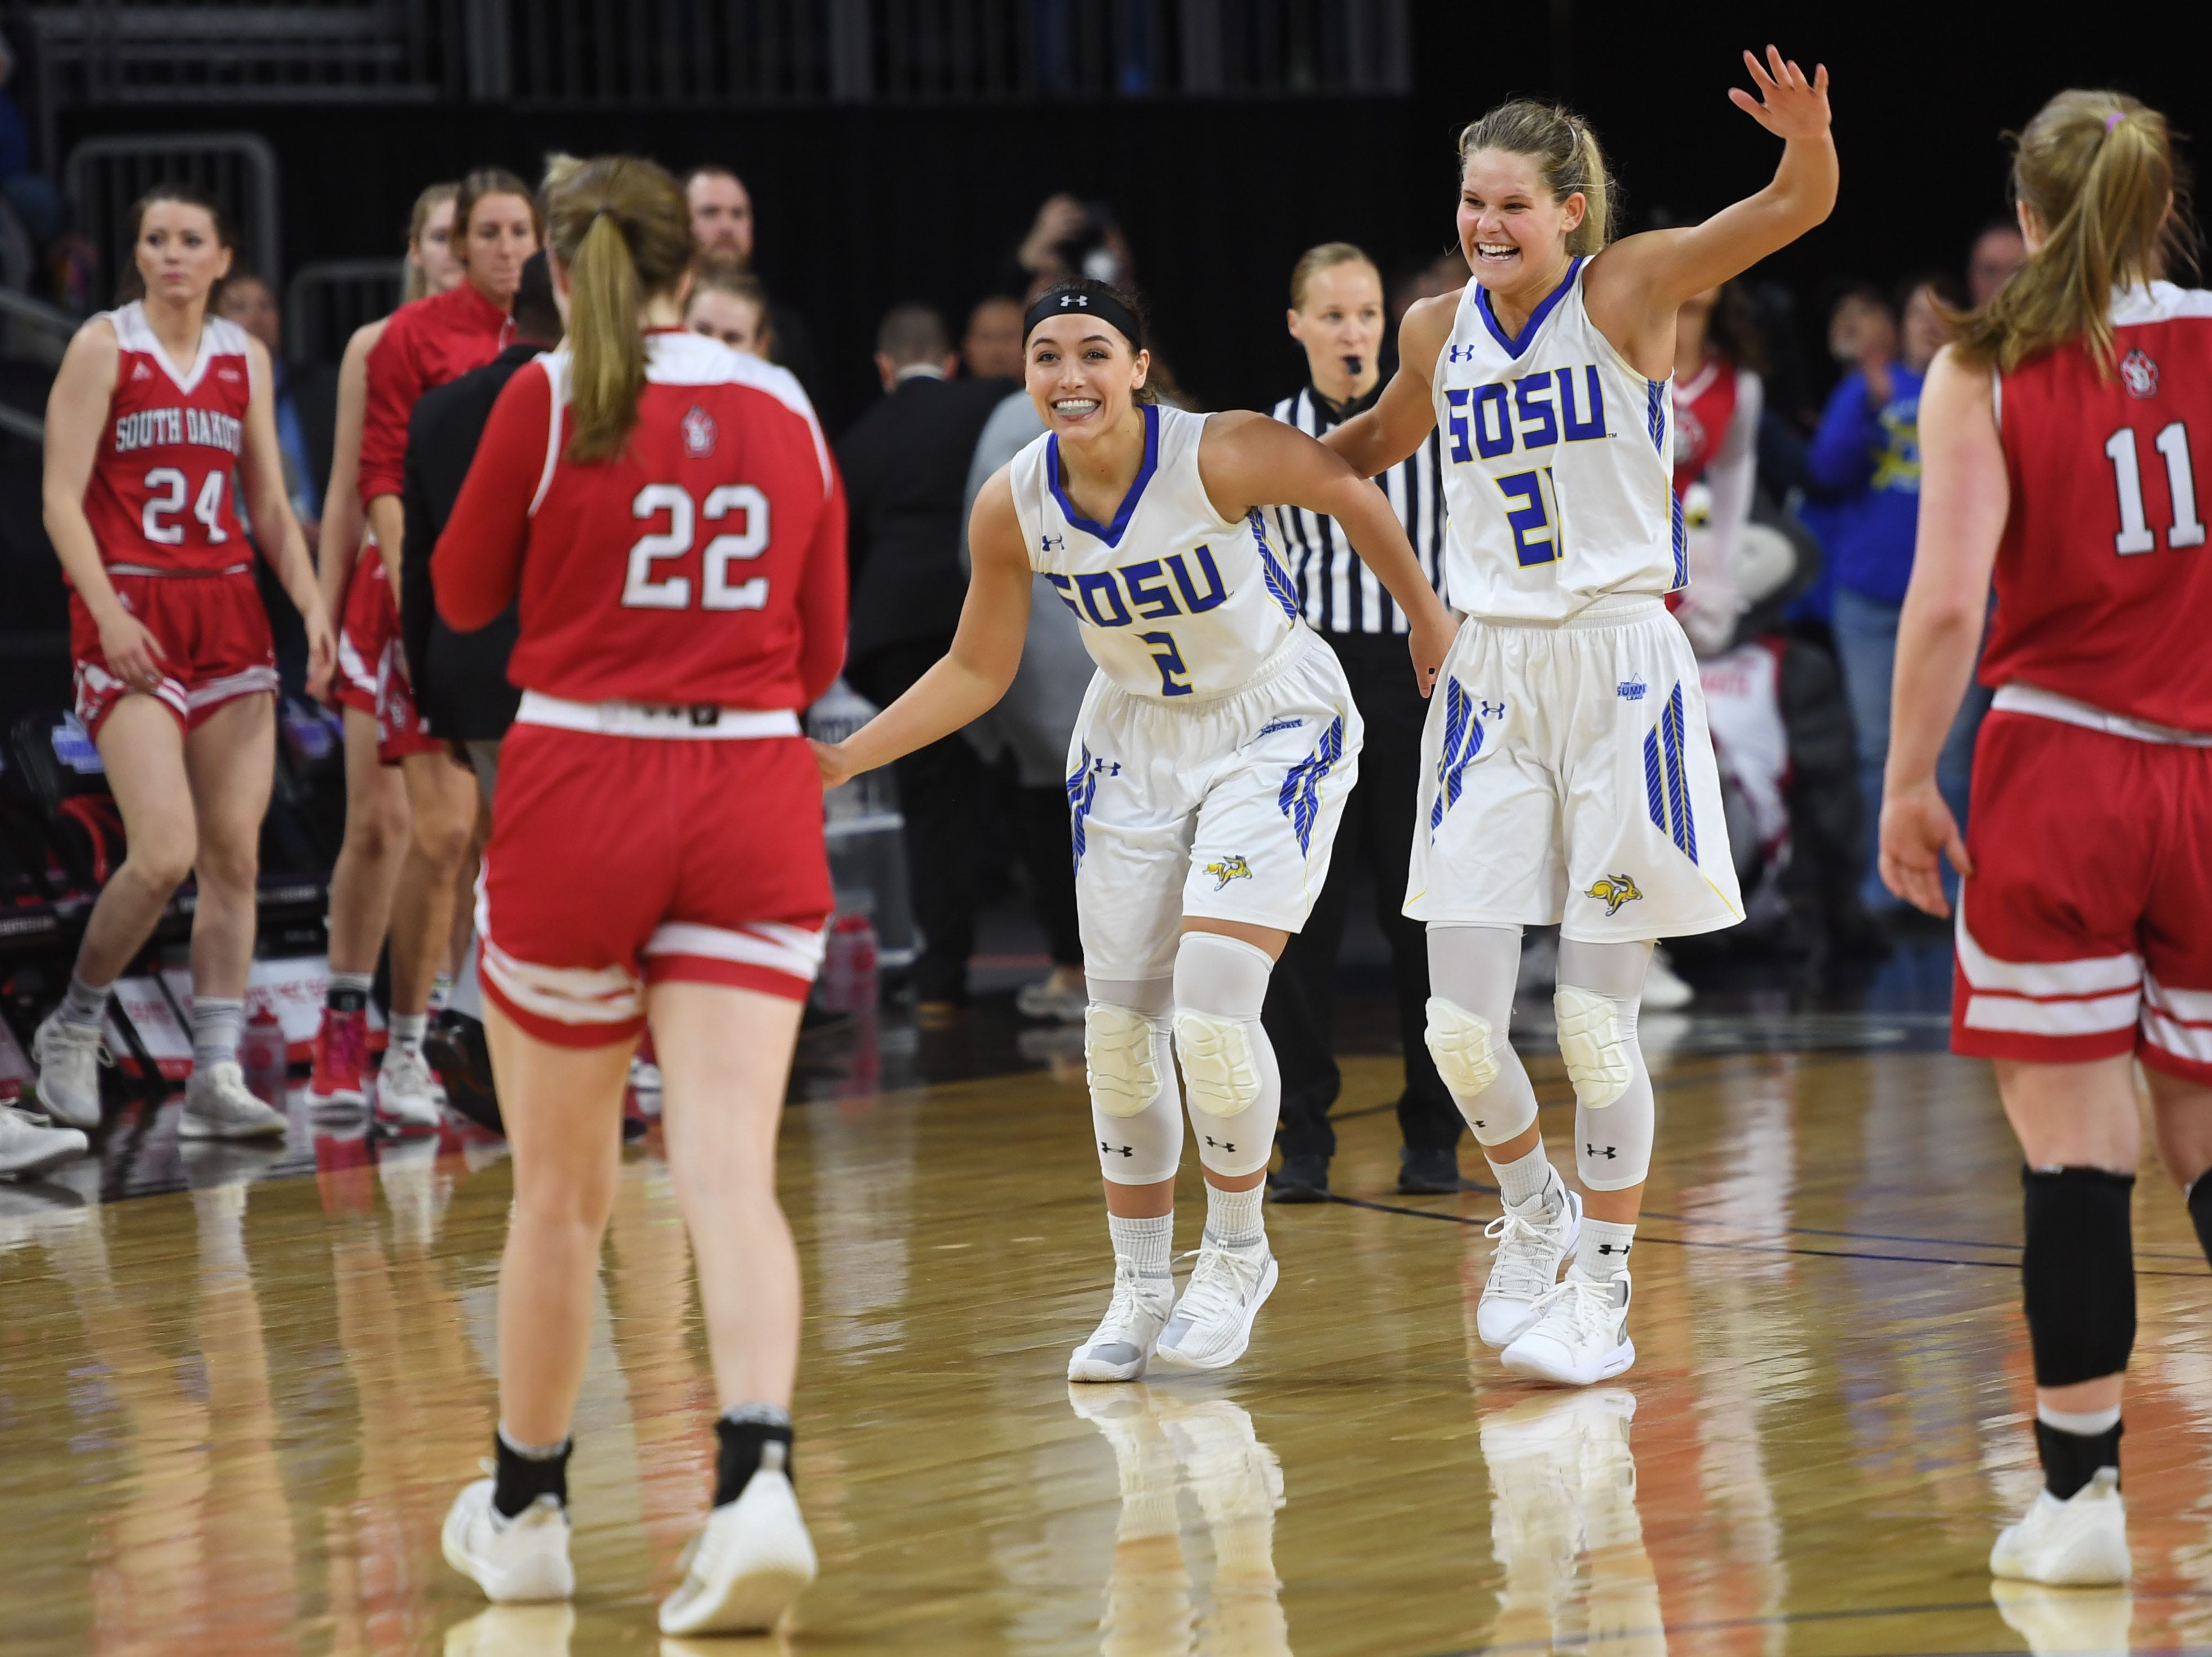 SDSU's Rylie Cascio Jensen (2) and Tylee Irwin (21) begin to celebrate their win against USD Tuesday, March 12, in the Summit League women's championship at the Denny Sanford Premier Center in Sioux Falls.